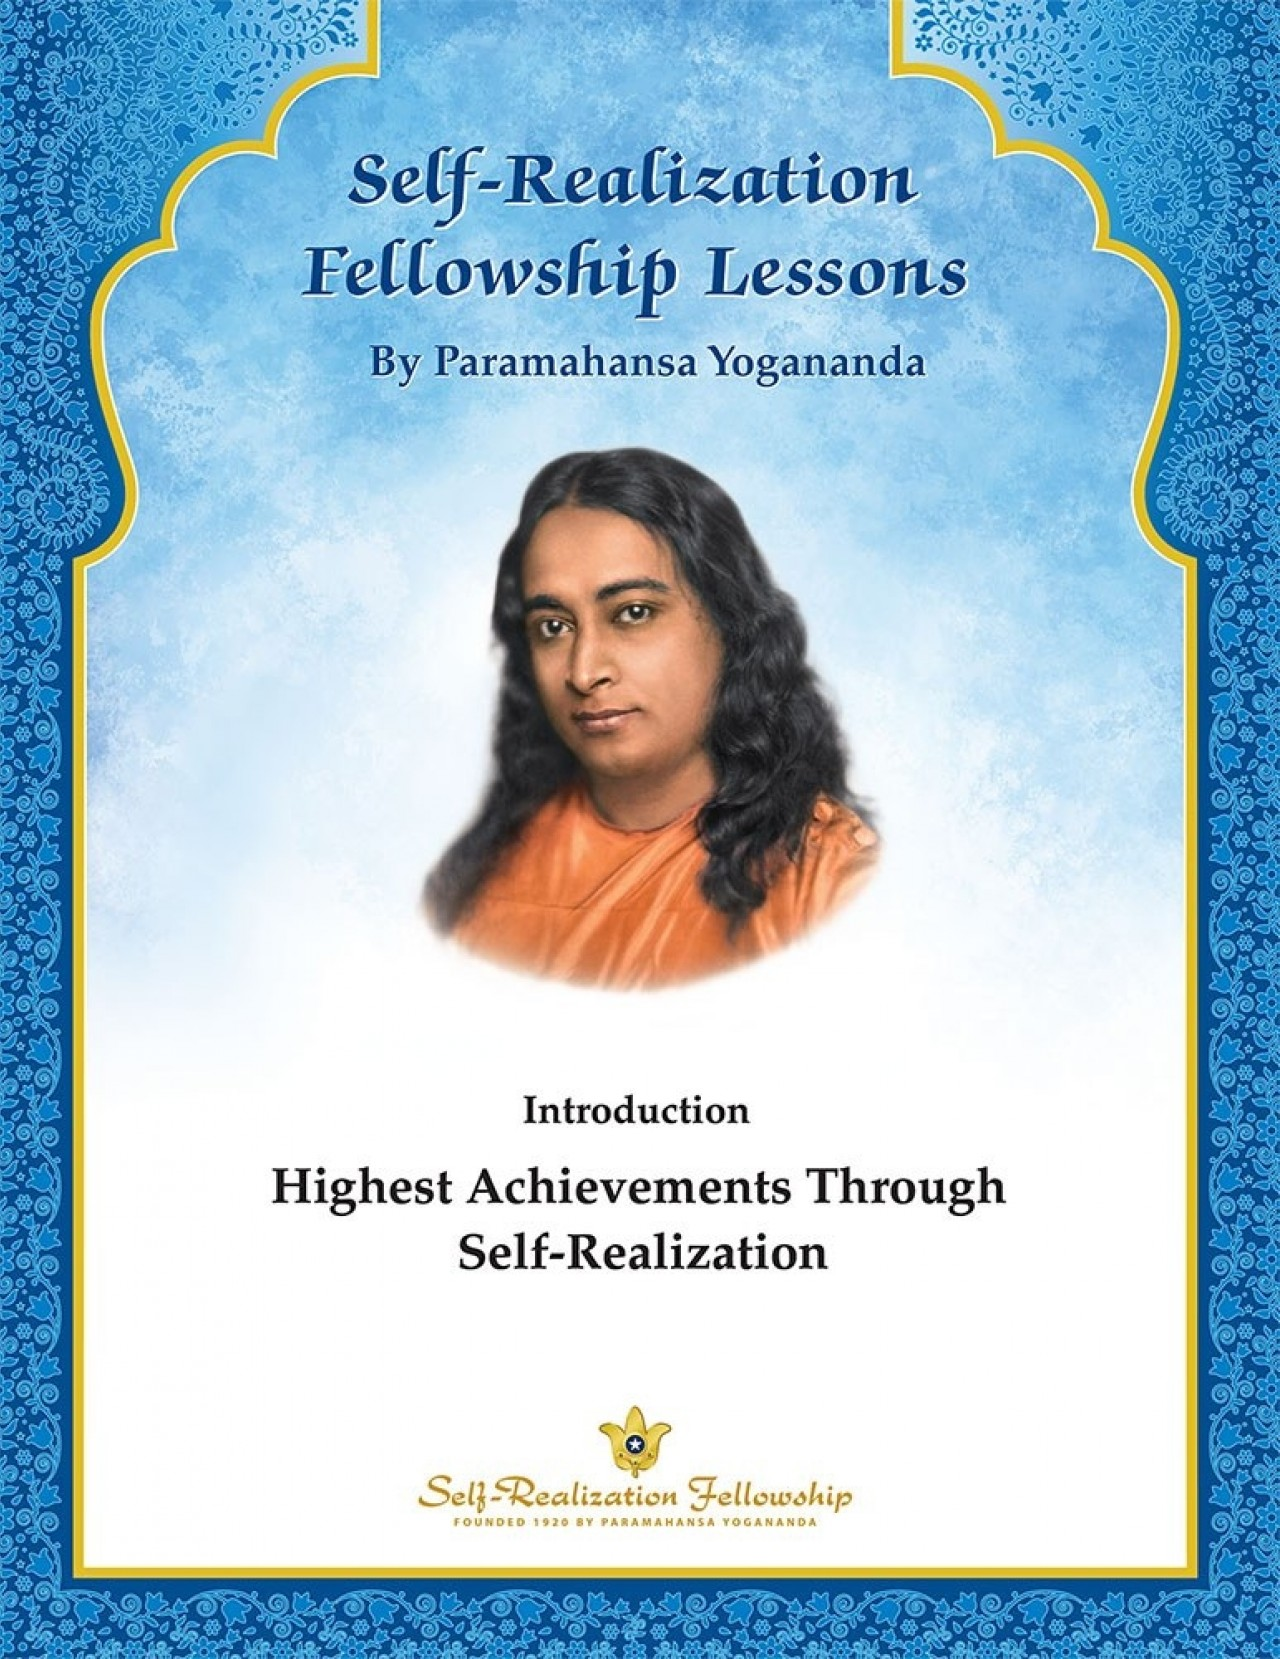 New Lessons Cover Introduction Highest Achievements